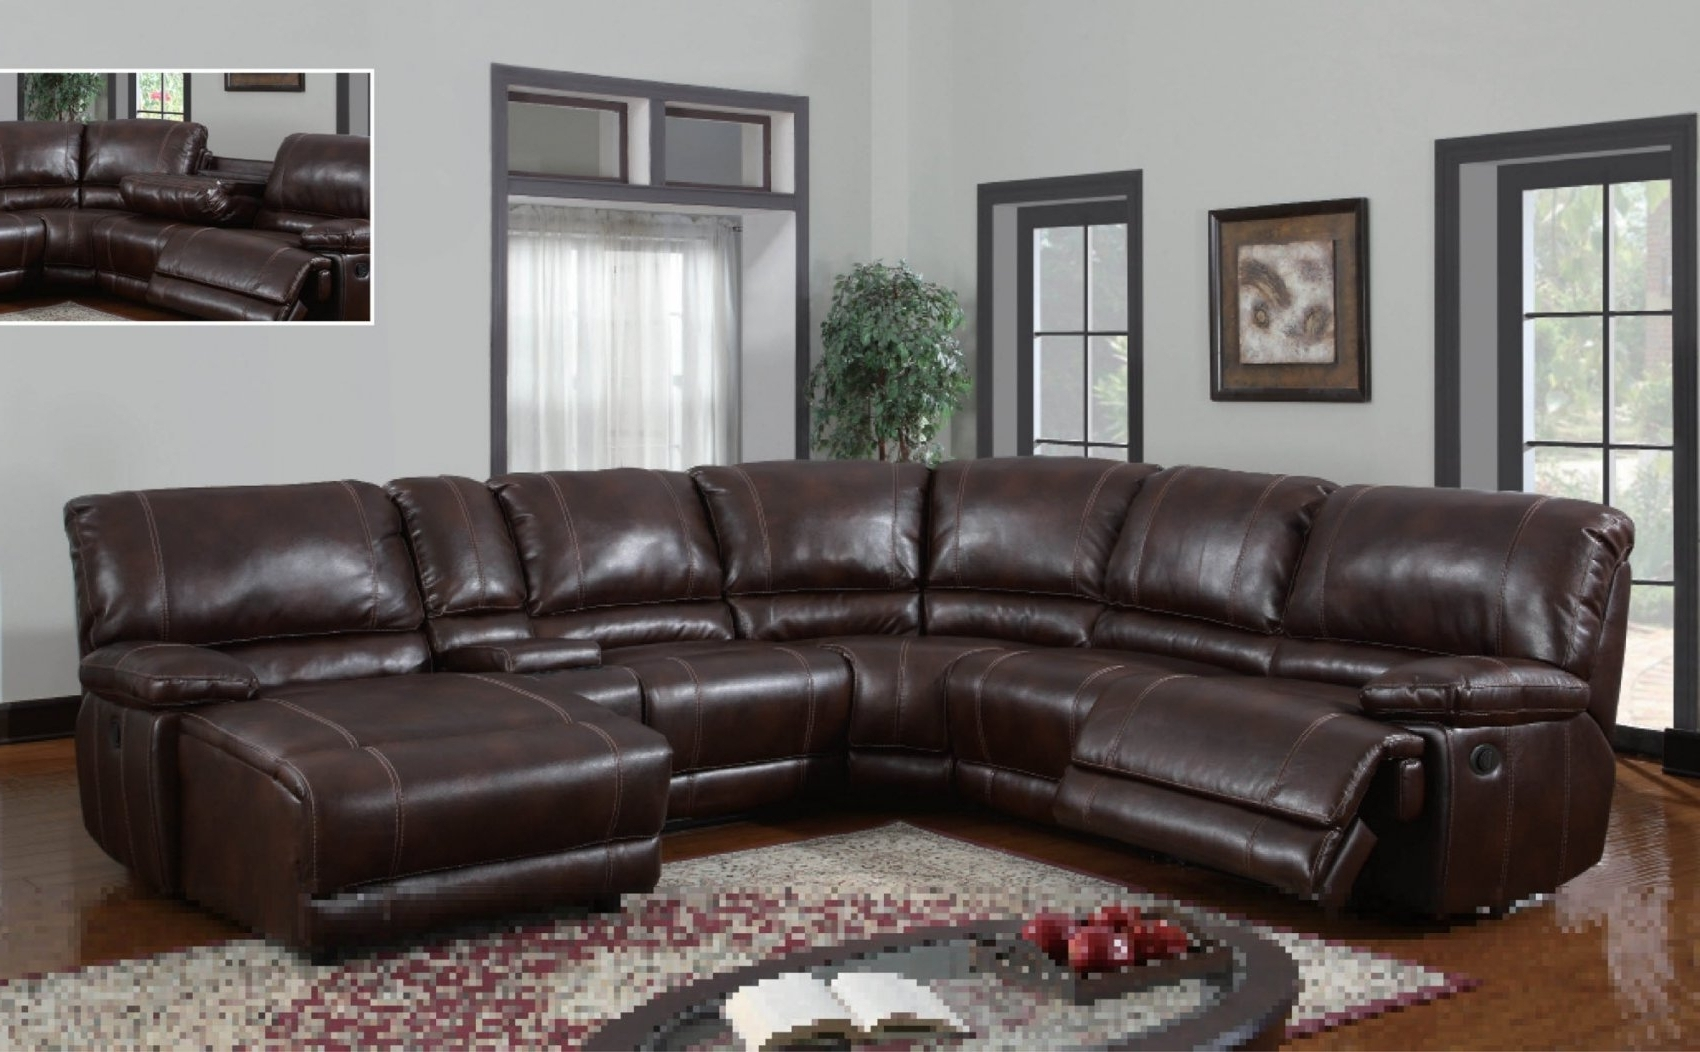 Fashionable Black Leather Reclining Loveseat (View 12 of 20)